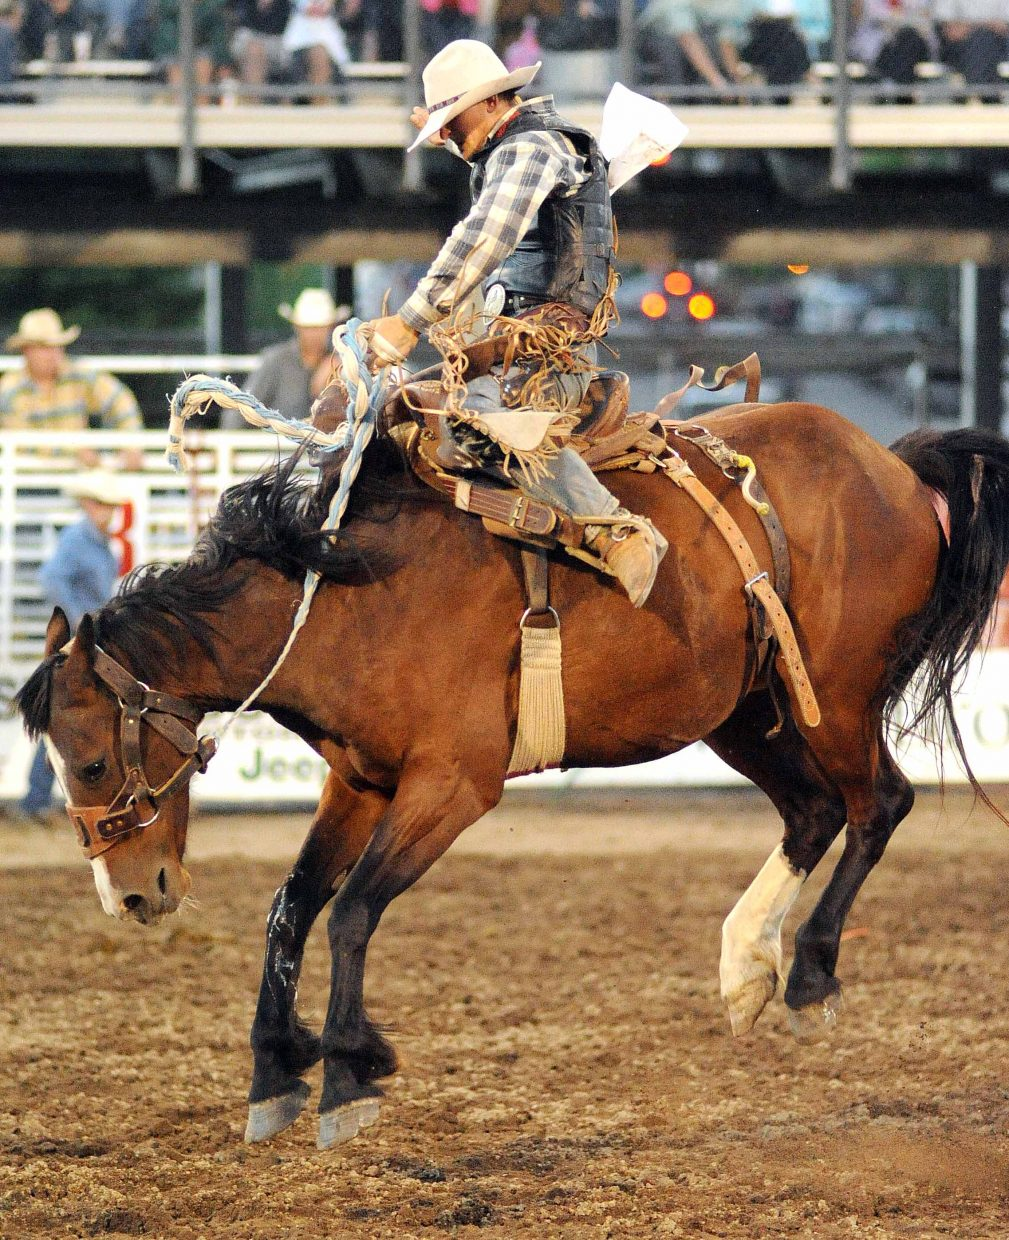 Steamboat Springs Pro Rodeo Series at the Brent Romick Rodeo Arena, 6:30 p.m.: Events include team roping, bronc riding, clowns, barrel racing and bull riding. Barbecue starts at 5 p.m. and live entertainment goes on at 5:15 p.m. Fireworks show follows rodeo. FREE for children 6 and younger, $10 for youths ages 7 to 15, $20 for adults. 970-879-1818 or www.steamboatprorodeo.com. 401 River Road.(Photo: Loncey Johnson rides in 2011.)